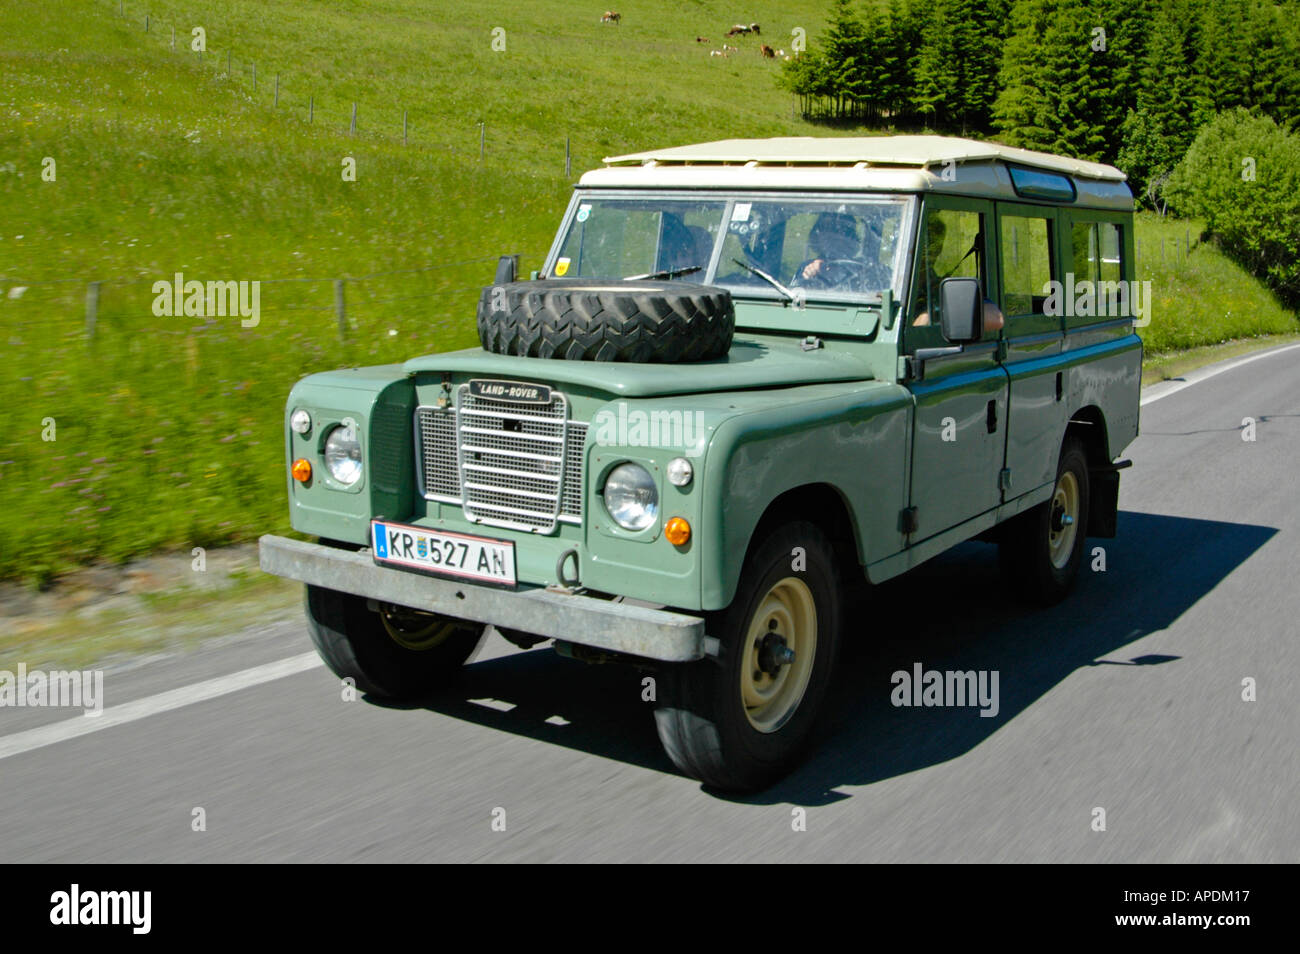 land rover series 3 109 station wagon lwb 4cyl petrol stockfoto lizenzfreies bild 5144598 alamy. Black Bedroom Furniture Sets. Home Design Ideas